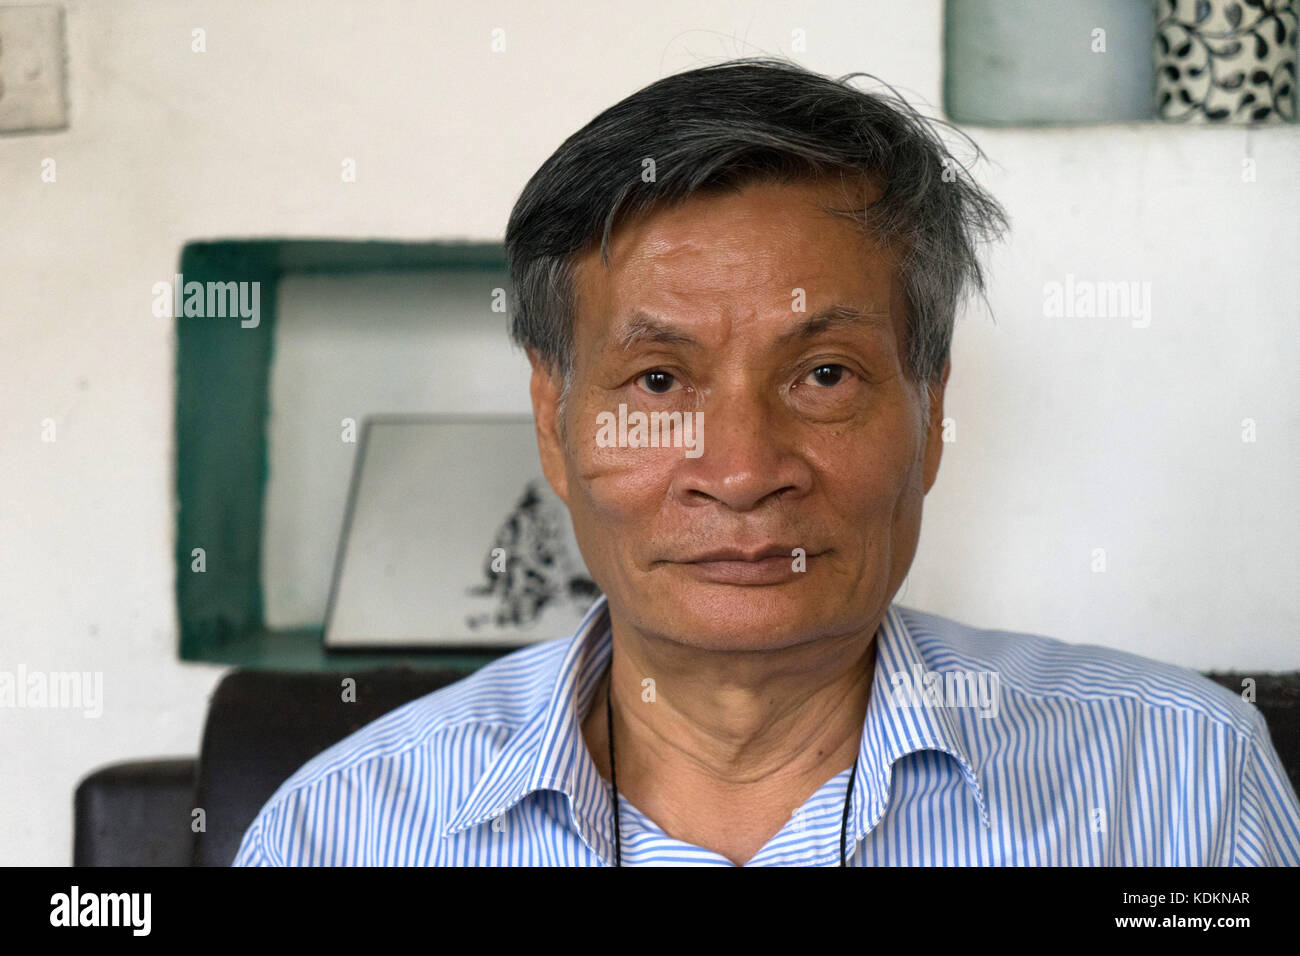 Hanoi, Vietnam. 10th May, 2016. ARCHIVE - Archival material shows Nguyen Quang A, retired economist and entrepreneur - Stock Image